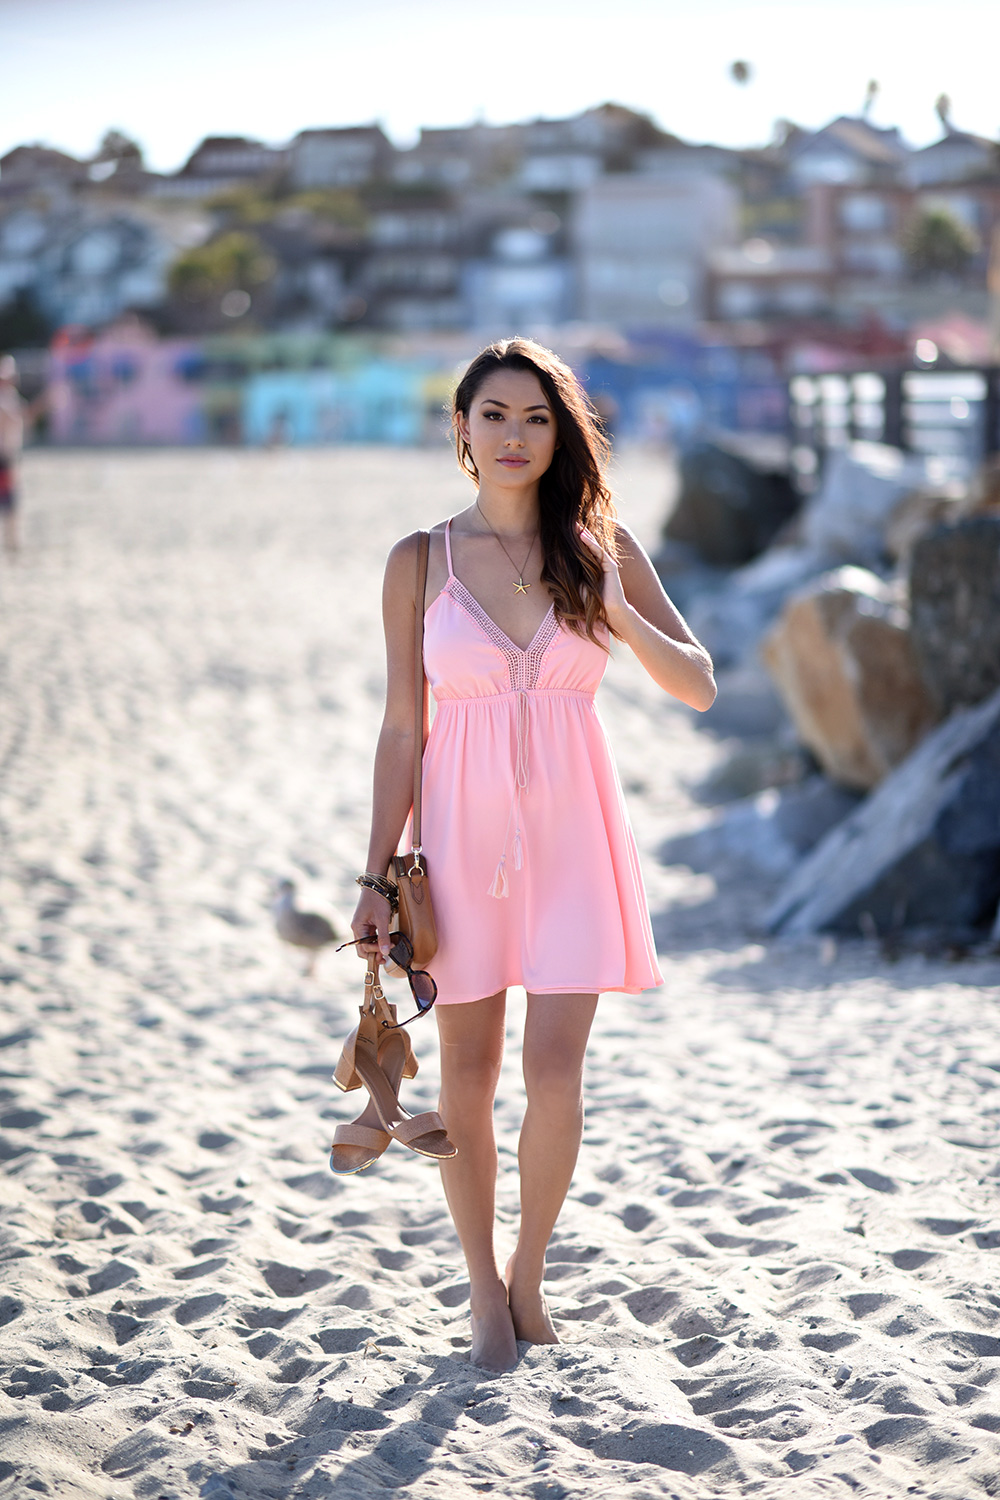 Jessica R Looks Adorable In This Super Cute Blush Pink Beach Dress With Tassel